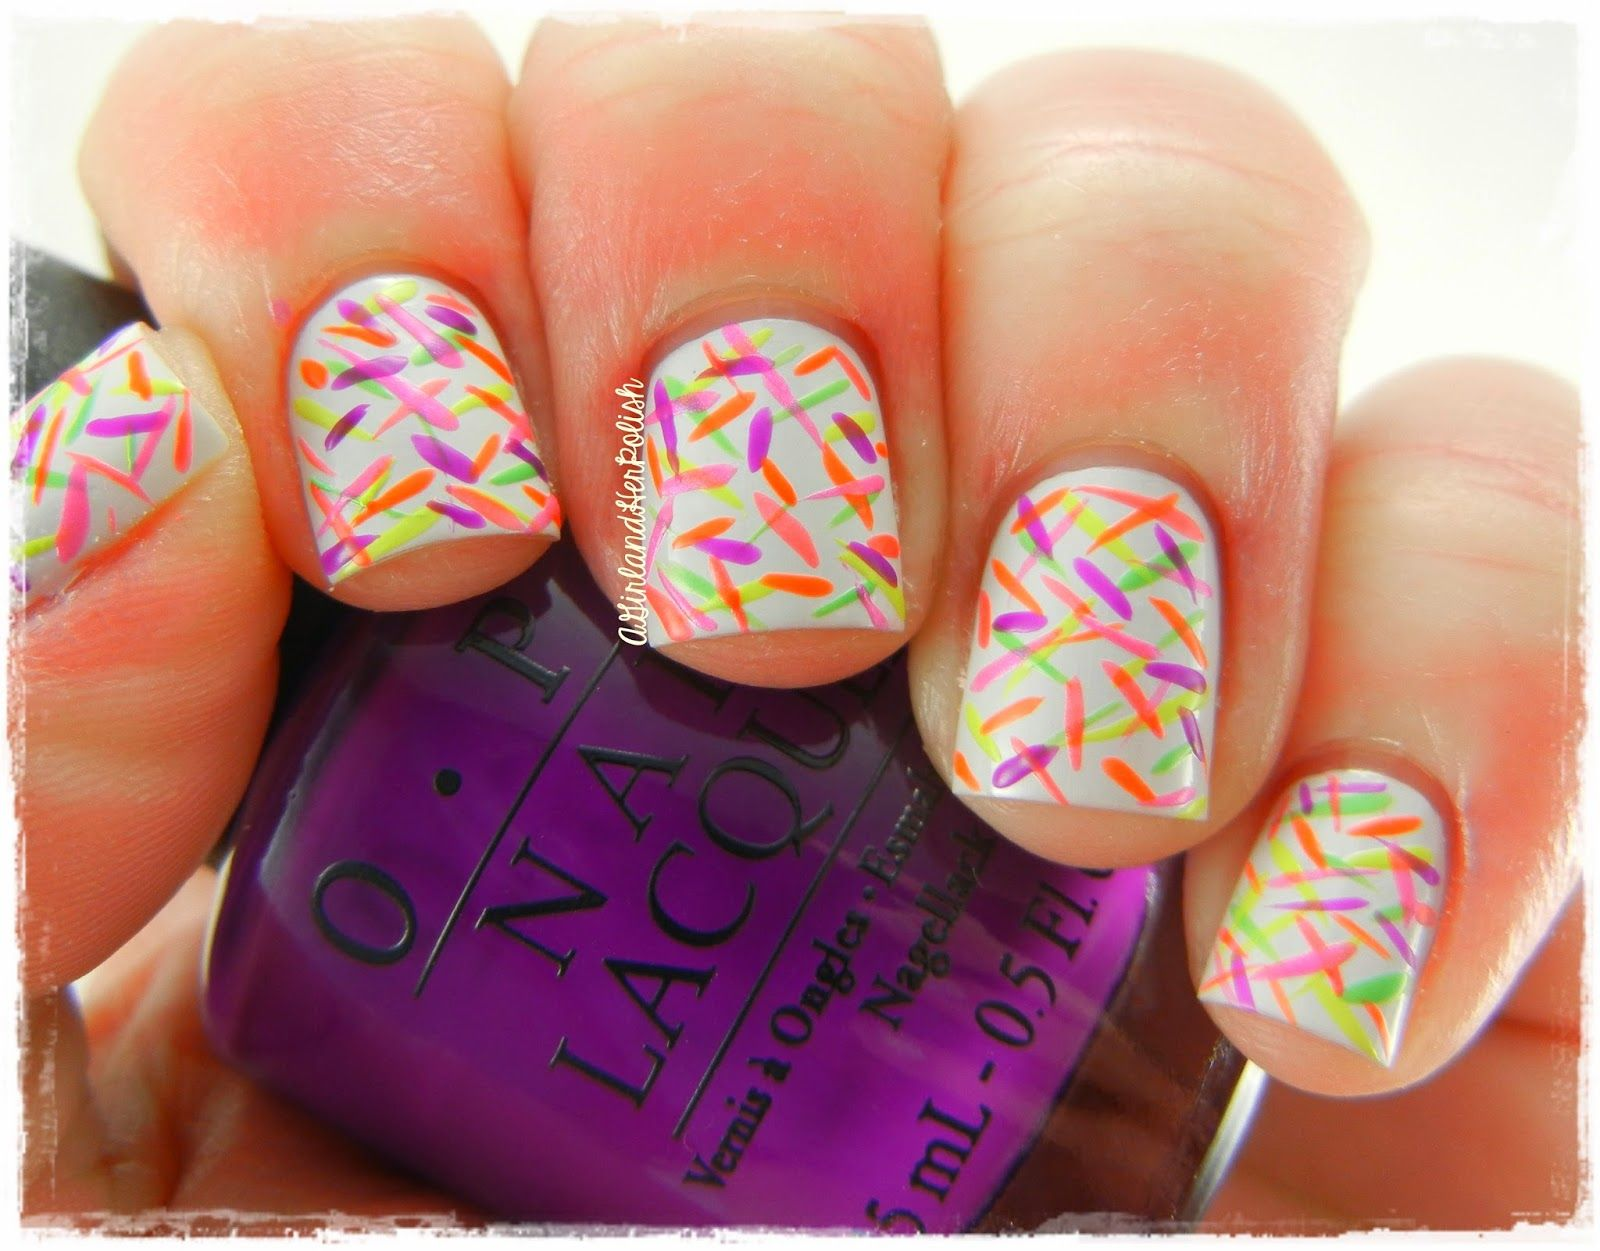 A Girl and Her Polish: OPI Neon Lines nails | Nails | Pinterest ...